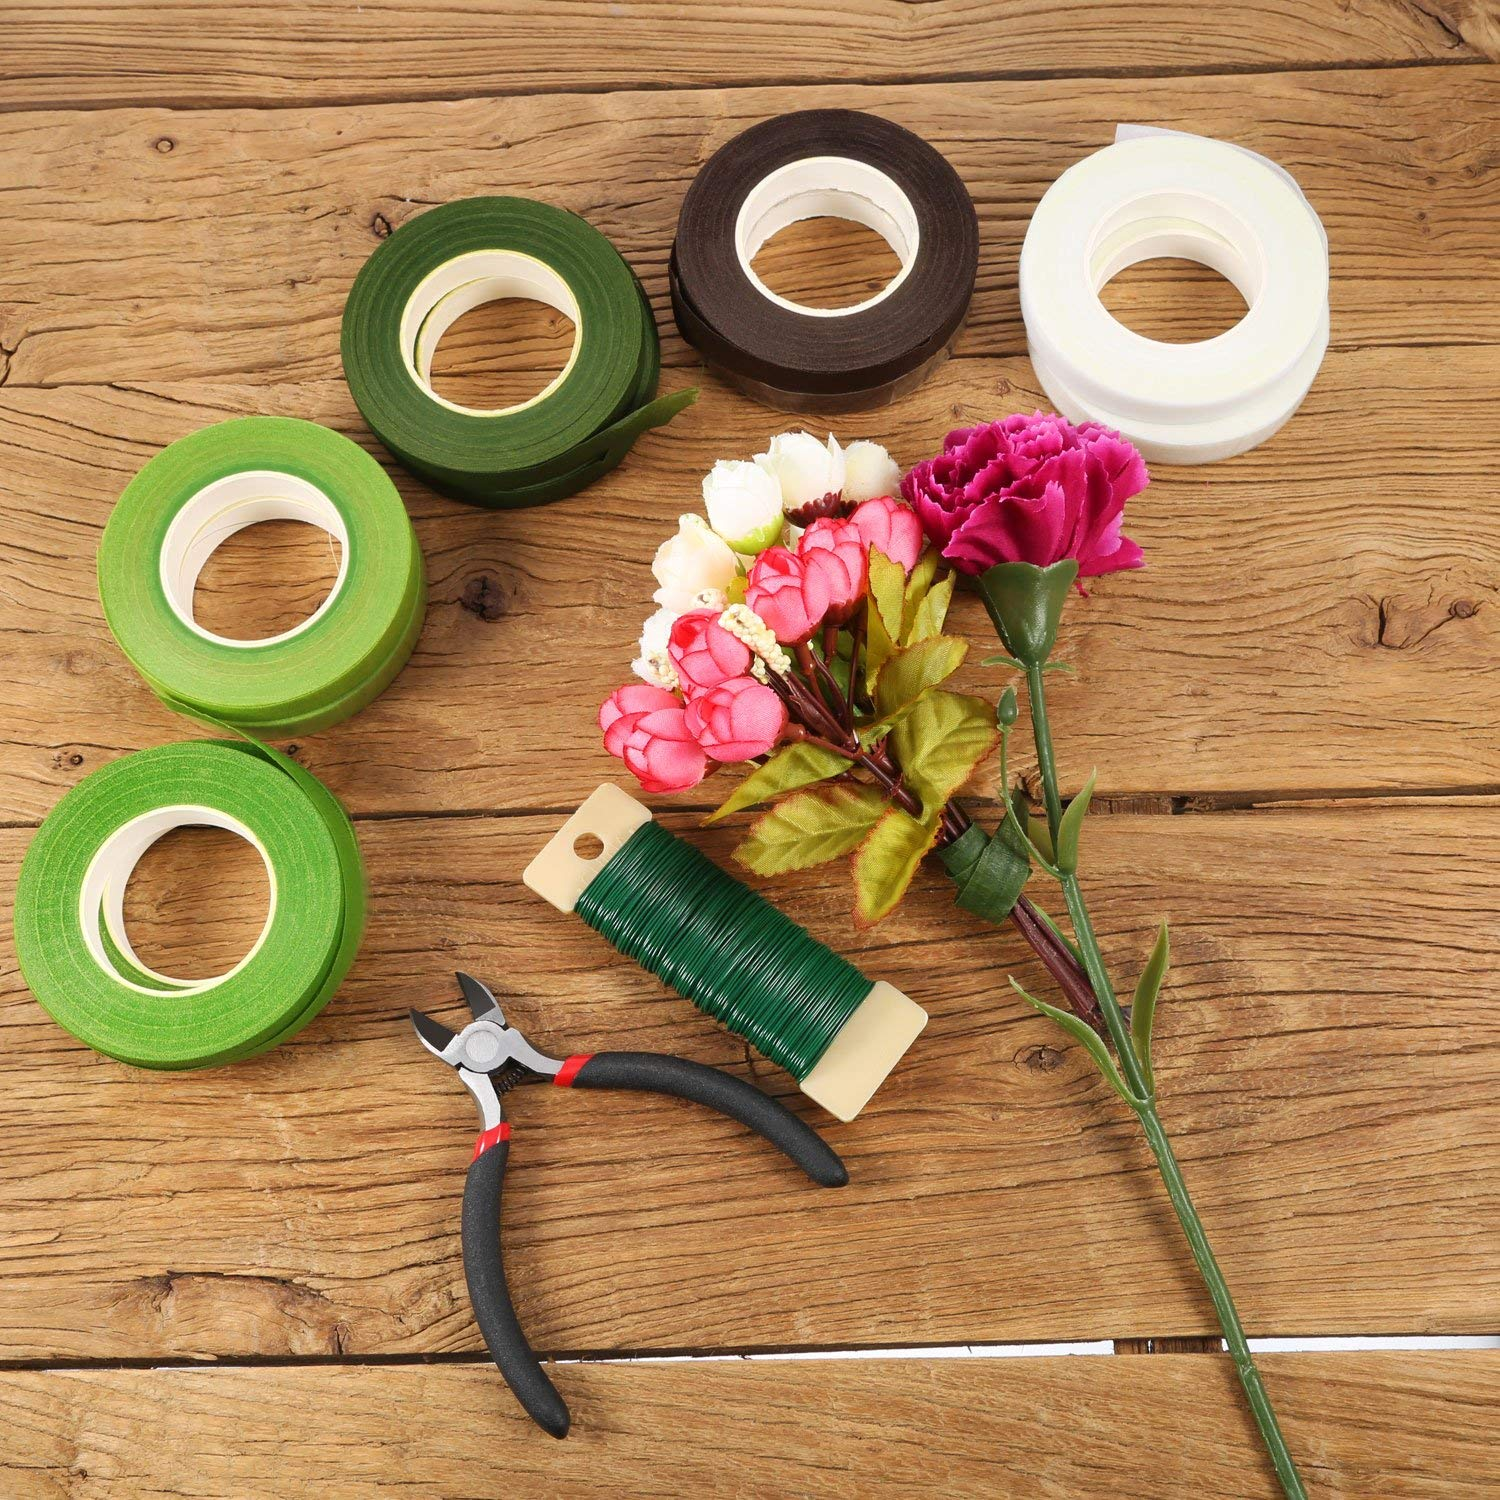 Dark Green, Green, Grass Green, White, Coffee Brown 10 Rolls Floral Tapes Floral Adhesives with 5 Colors 0.5 Inch Wide by 30 Yard for Bouquet Stem Wrap Florist Tapes Flowers Making Tapes